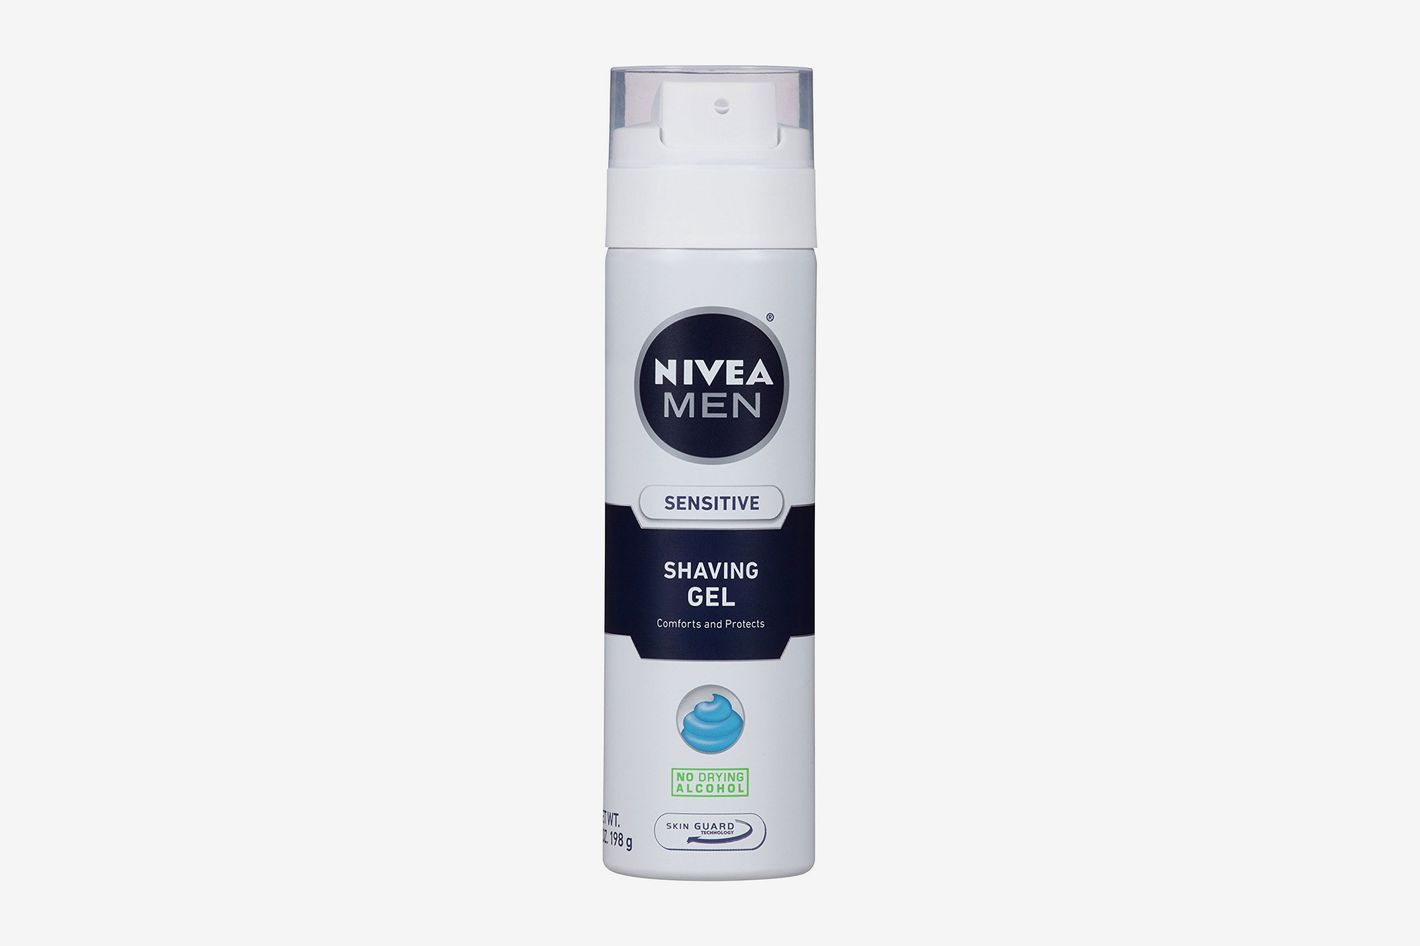 Nivea for Men Sensitive, Shaving Gel 7 oz (Pack of 3)